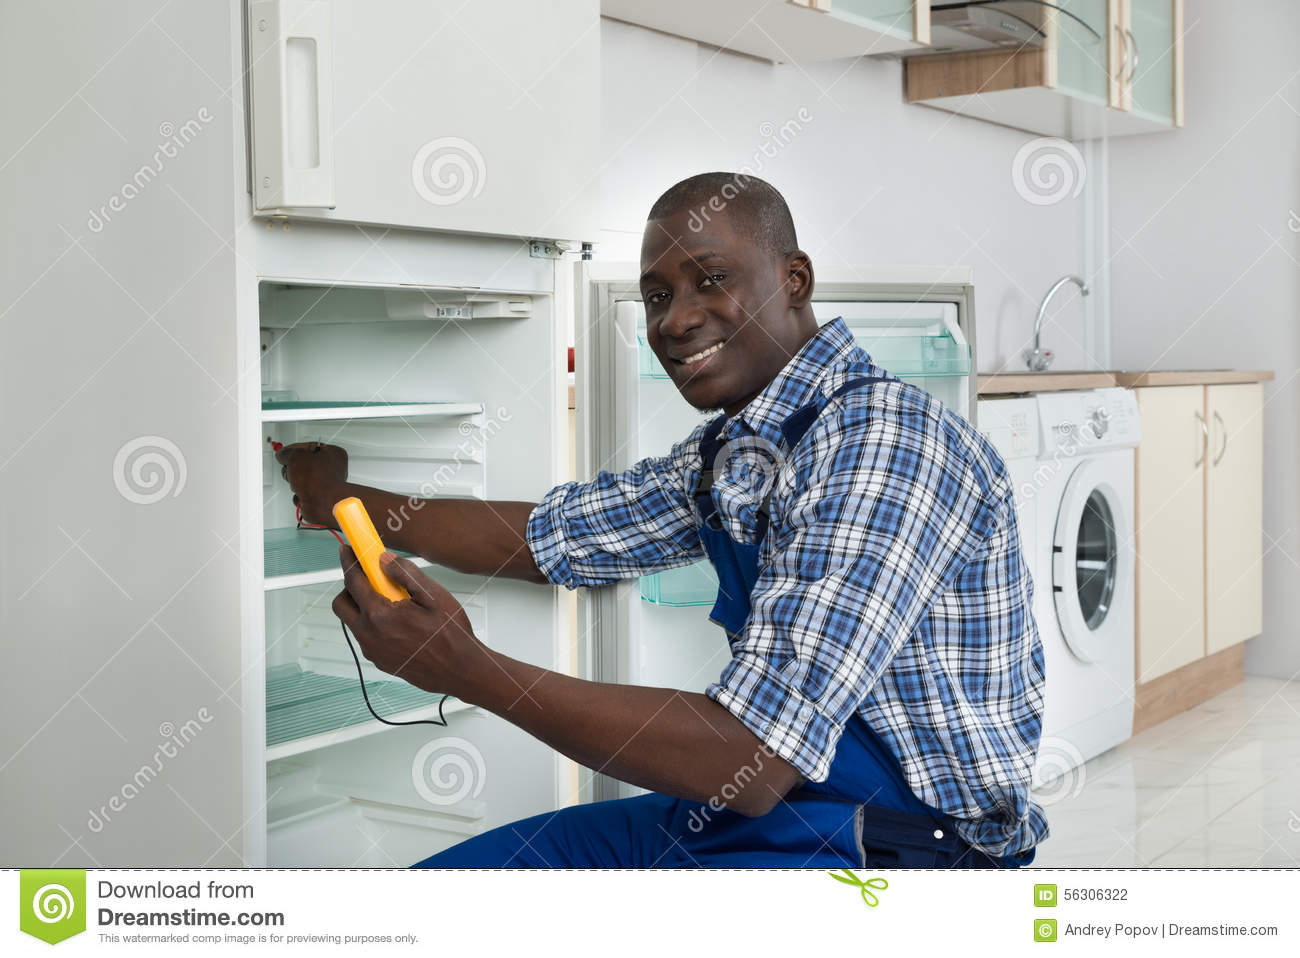 Technician repairing refrigerator appliance stock photo for African kitchen